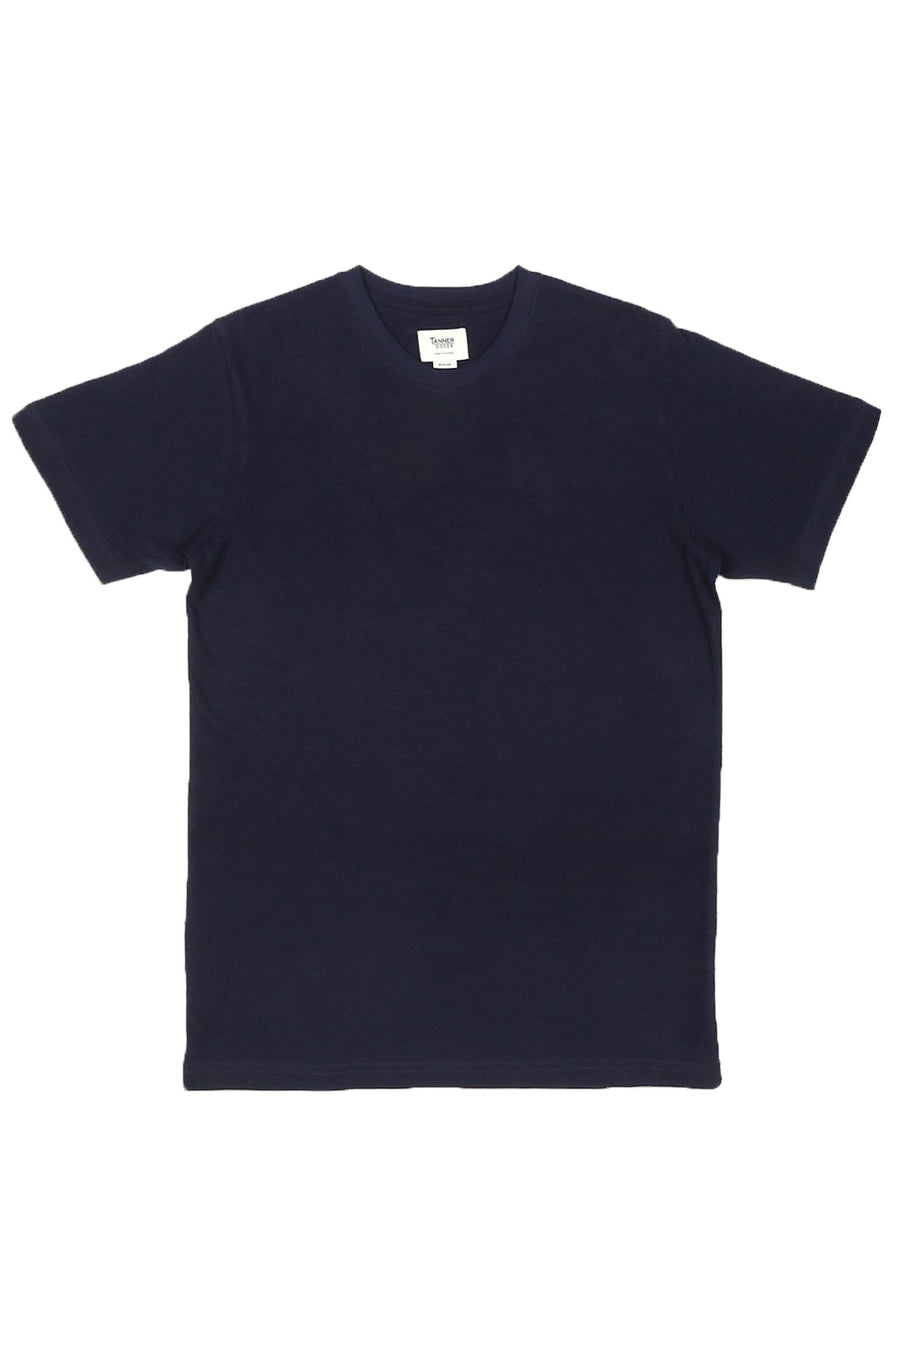 Woodland Slub Tee- Midnight